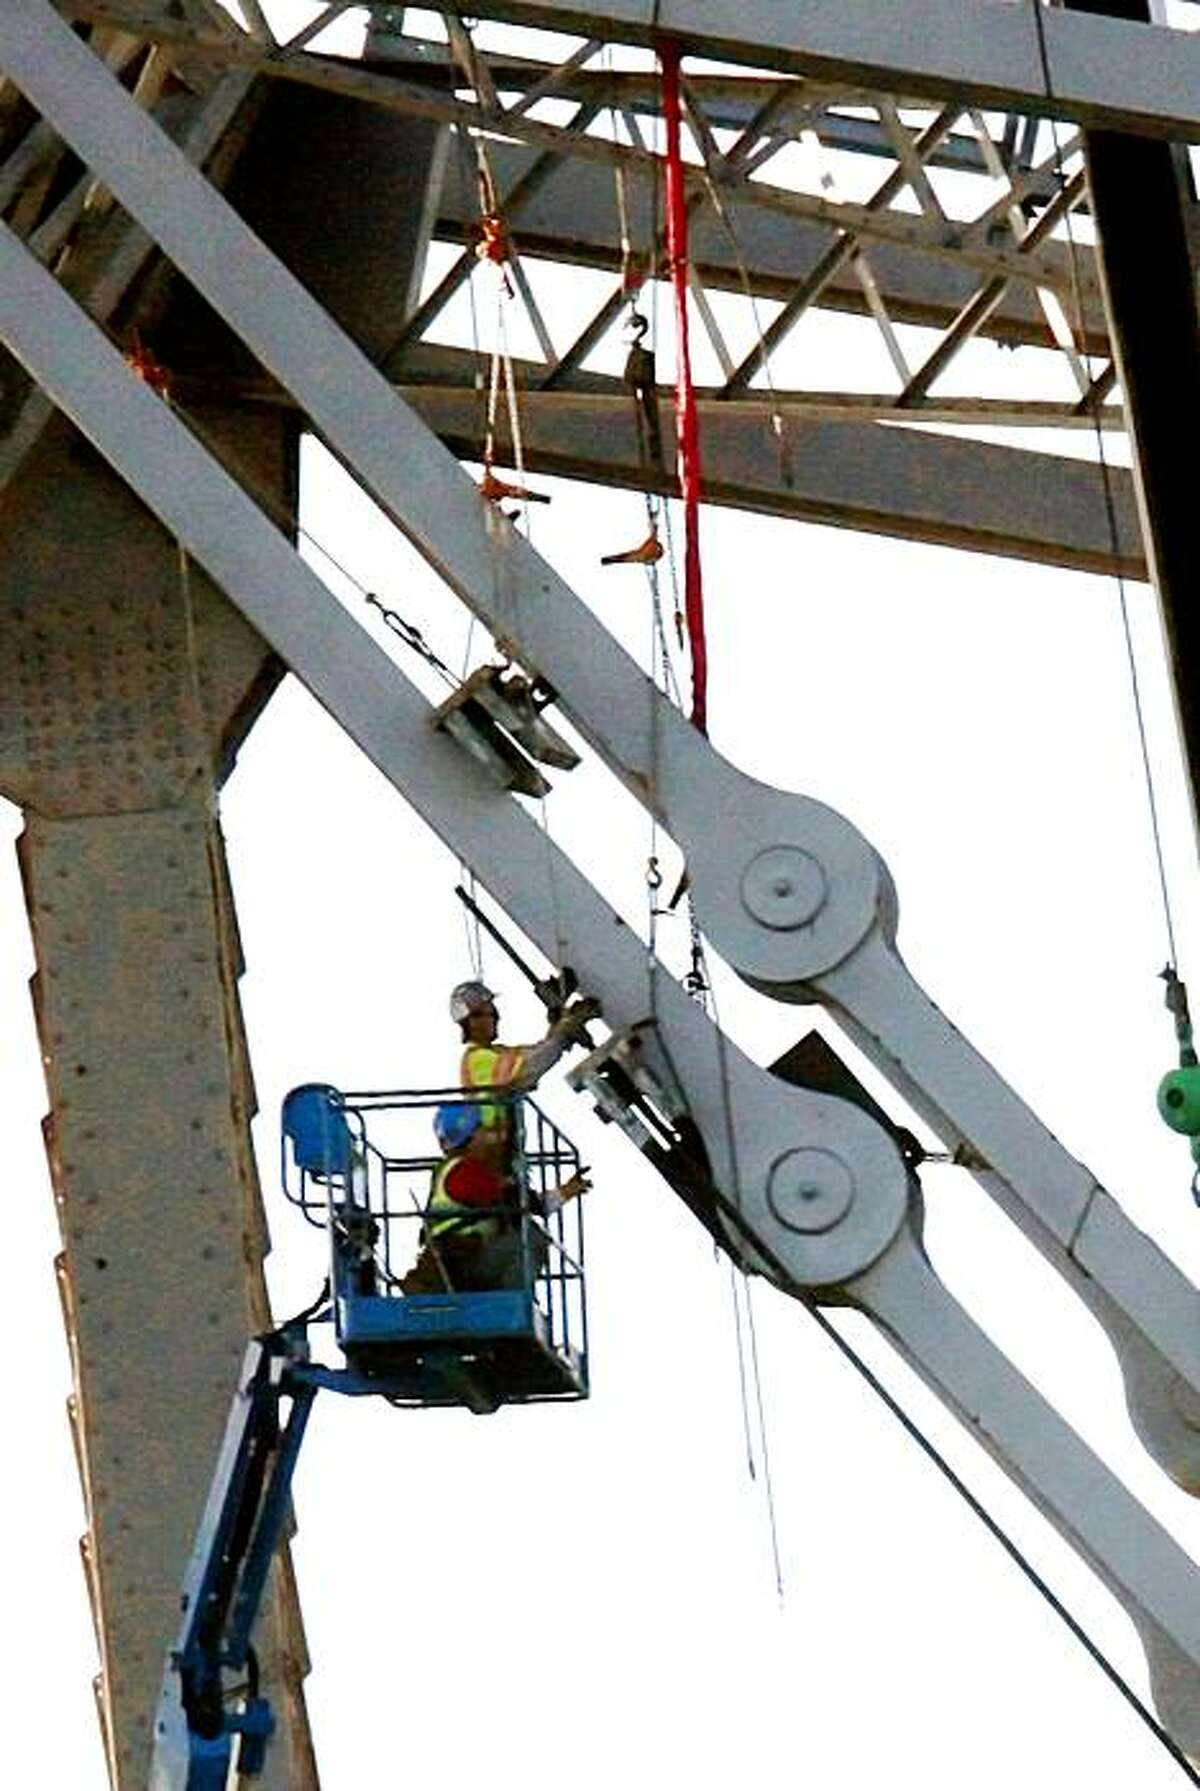 Workers work on the eastern tower of the Bay Bridge reinforcing a cracked eyebar on September 7, 2009 in Treasure Island, Calif.